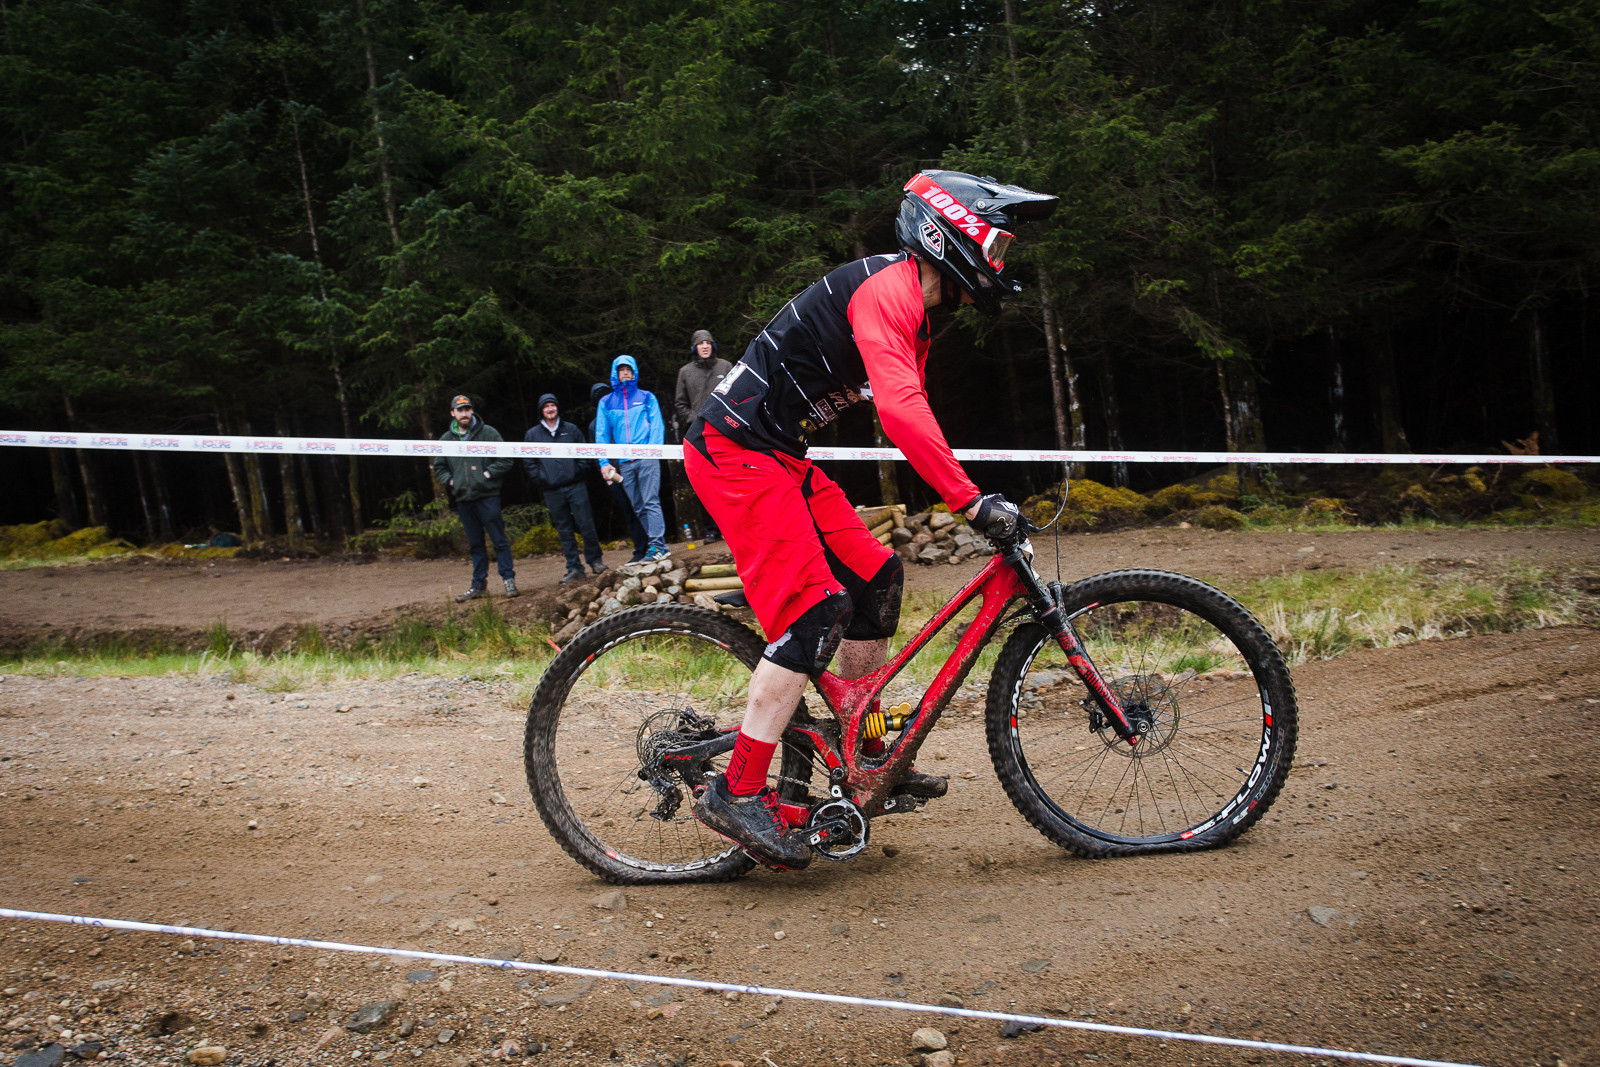 G-Out Fort William - Specialized S-Works Demo 8 - G-Out Project - Fort William BDS 2015 - Mountain Biking Pictures - Vital MTB